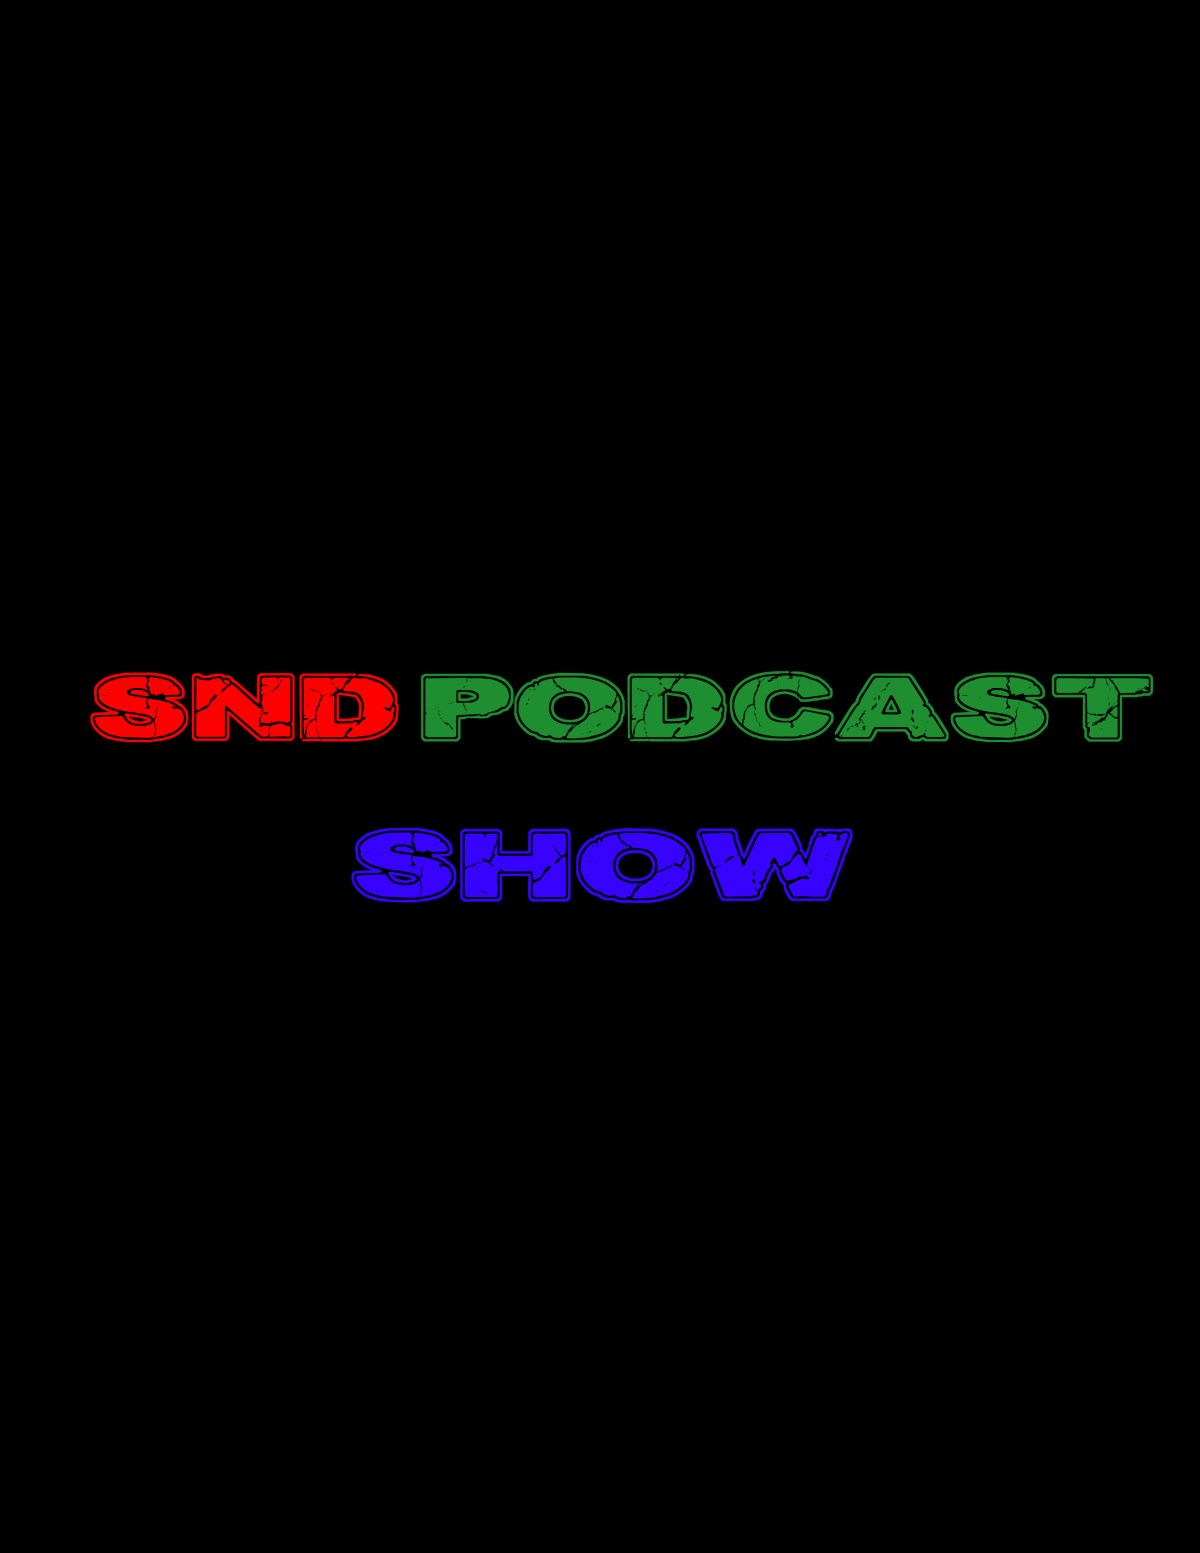 SNDPODCAST SHOW SUPER BOWL PREVIEW SHOW